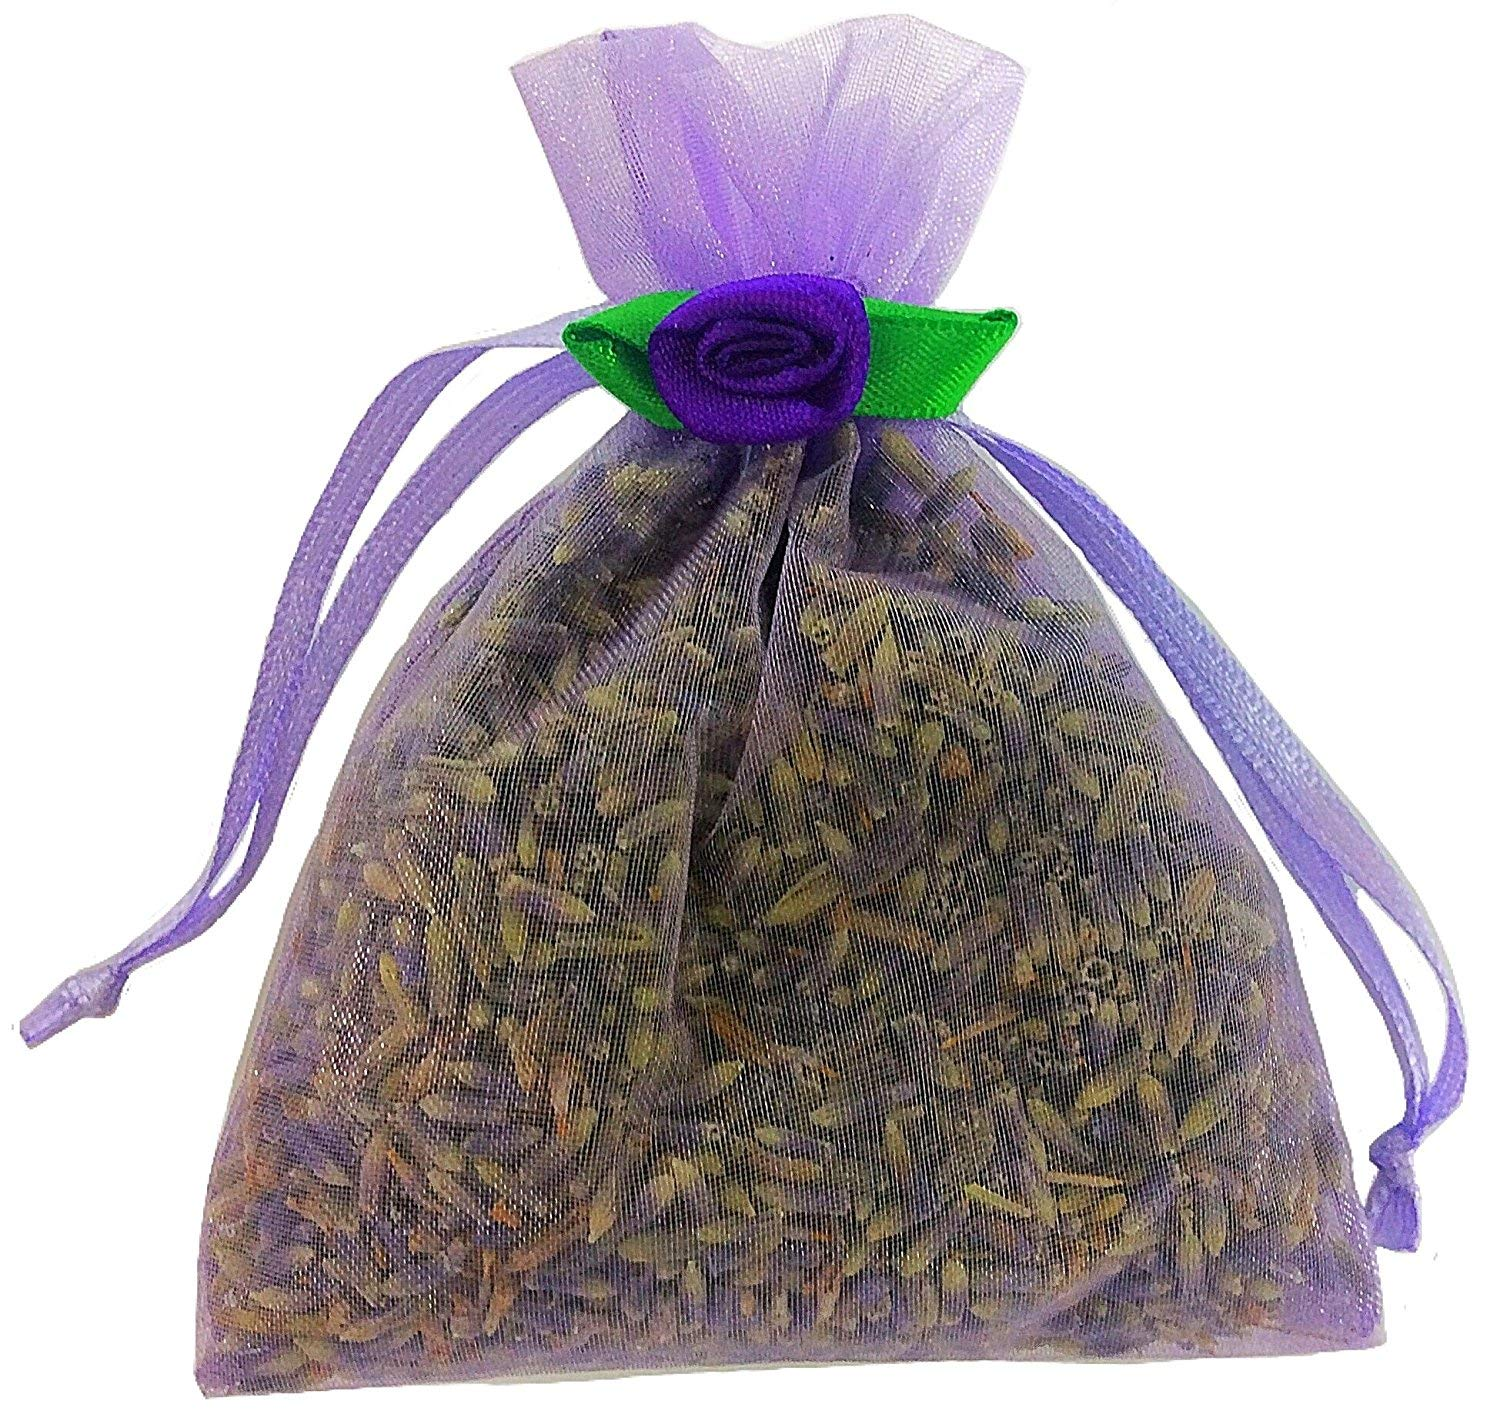 100 Lavender Filled Sachets - Perfect for Special Events - Handmade by Zziggysgal (Lavender with Satin Rosettes) by zziggysgal (Image #5)